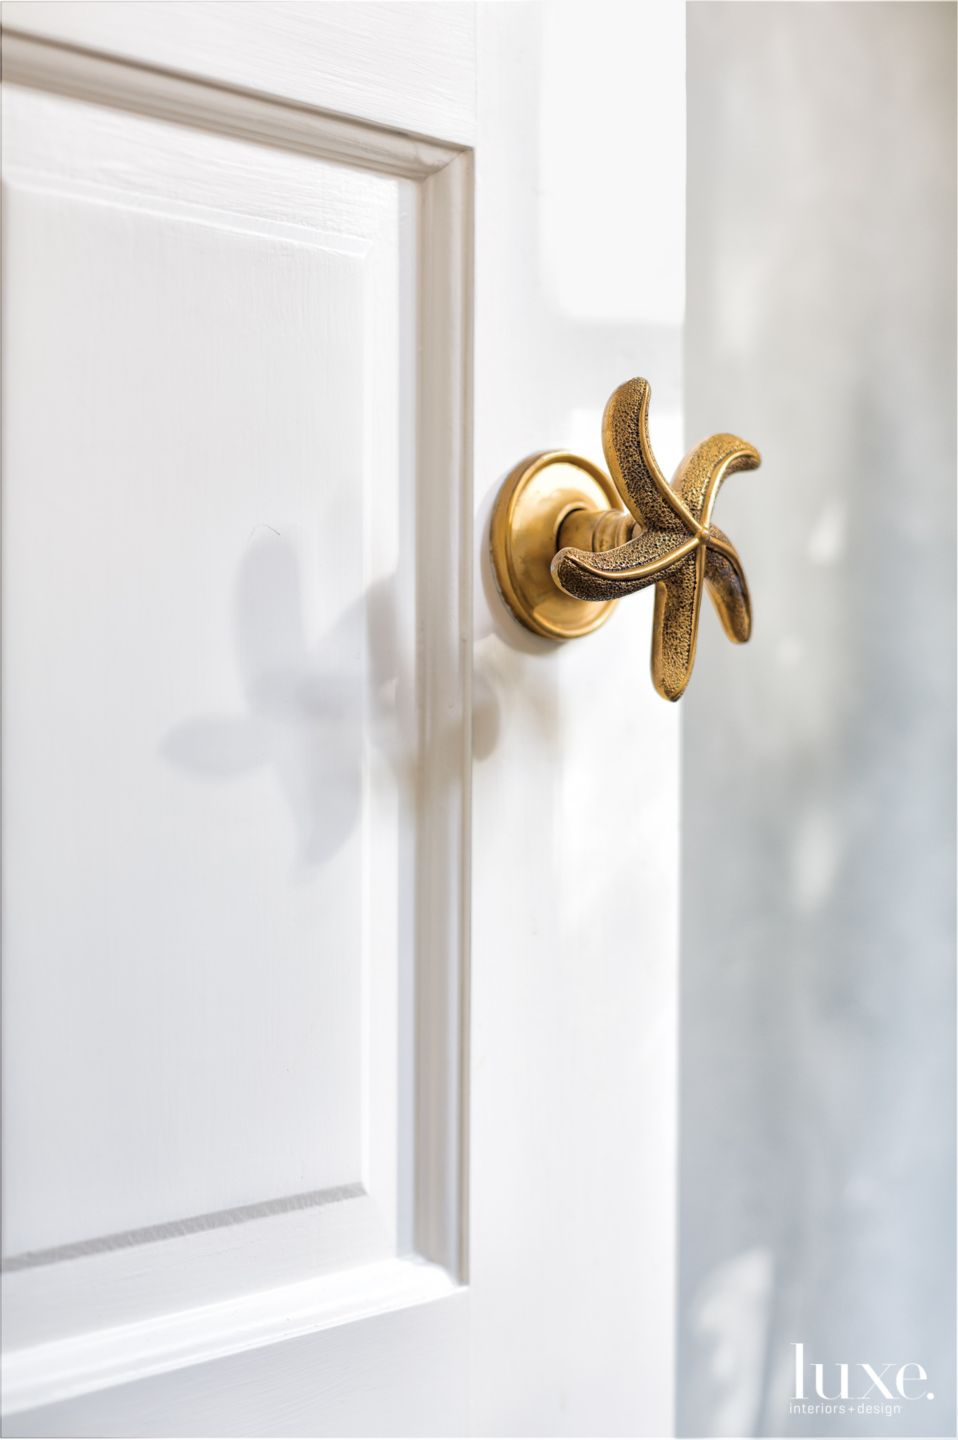 Contemporary White Bathroom Door with Brass Starfish Handle